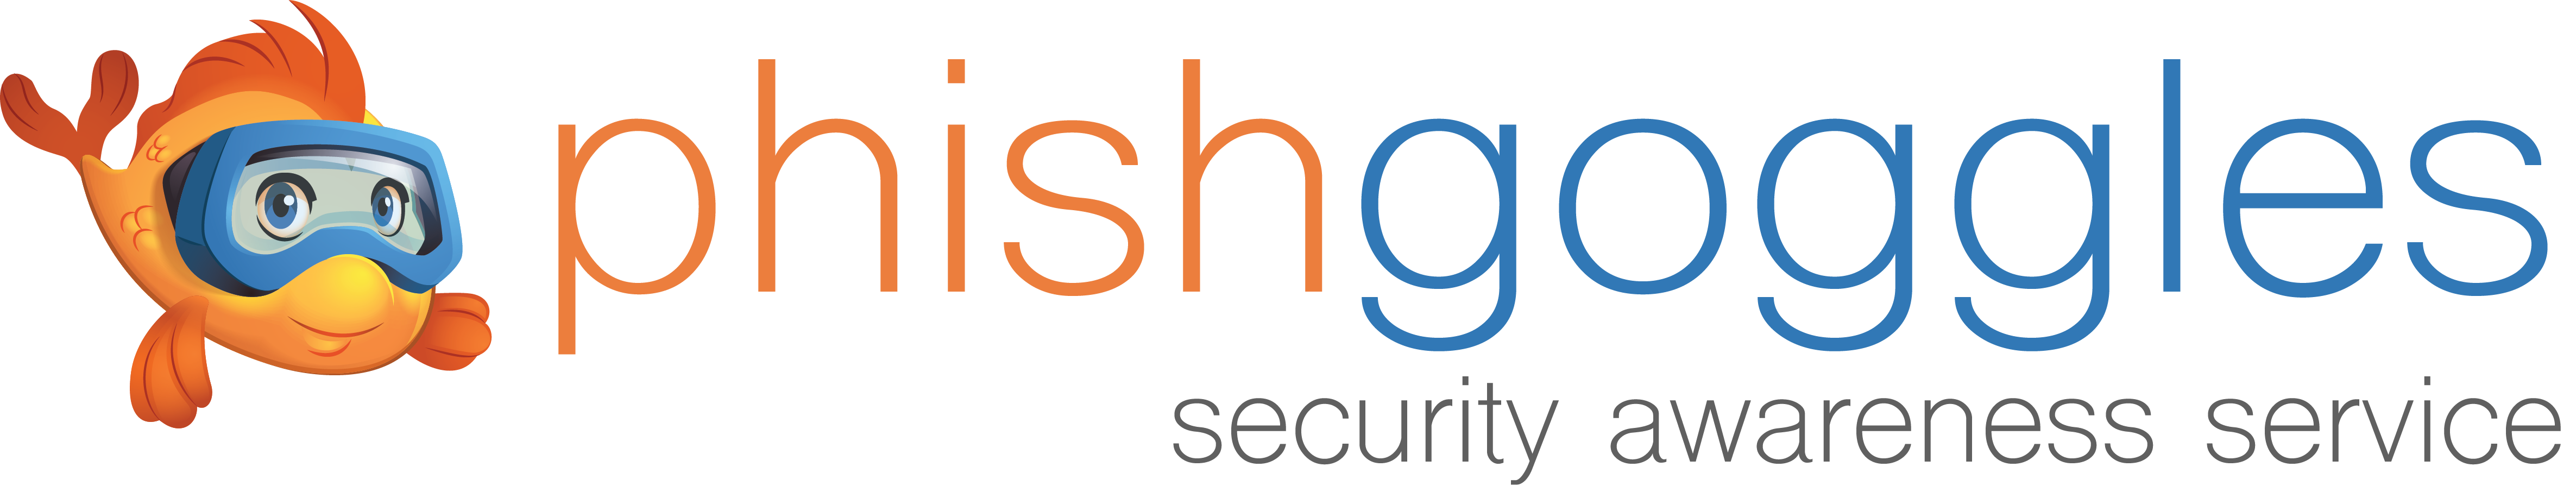 PhishGoggles Security Awareness Service